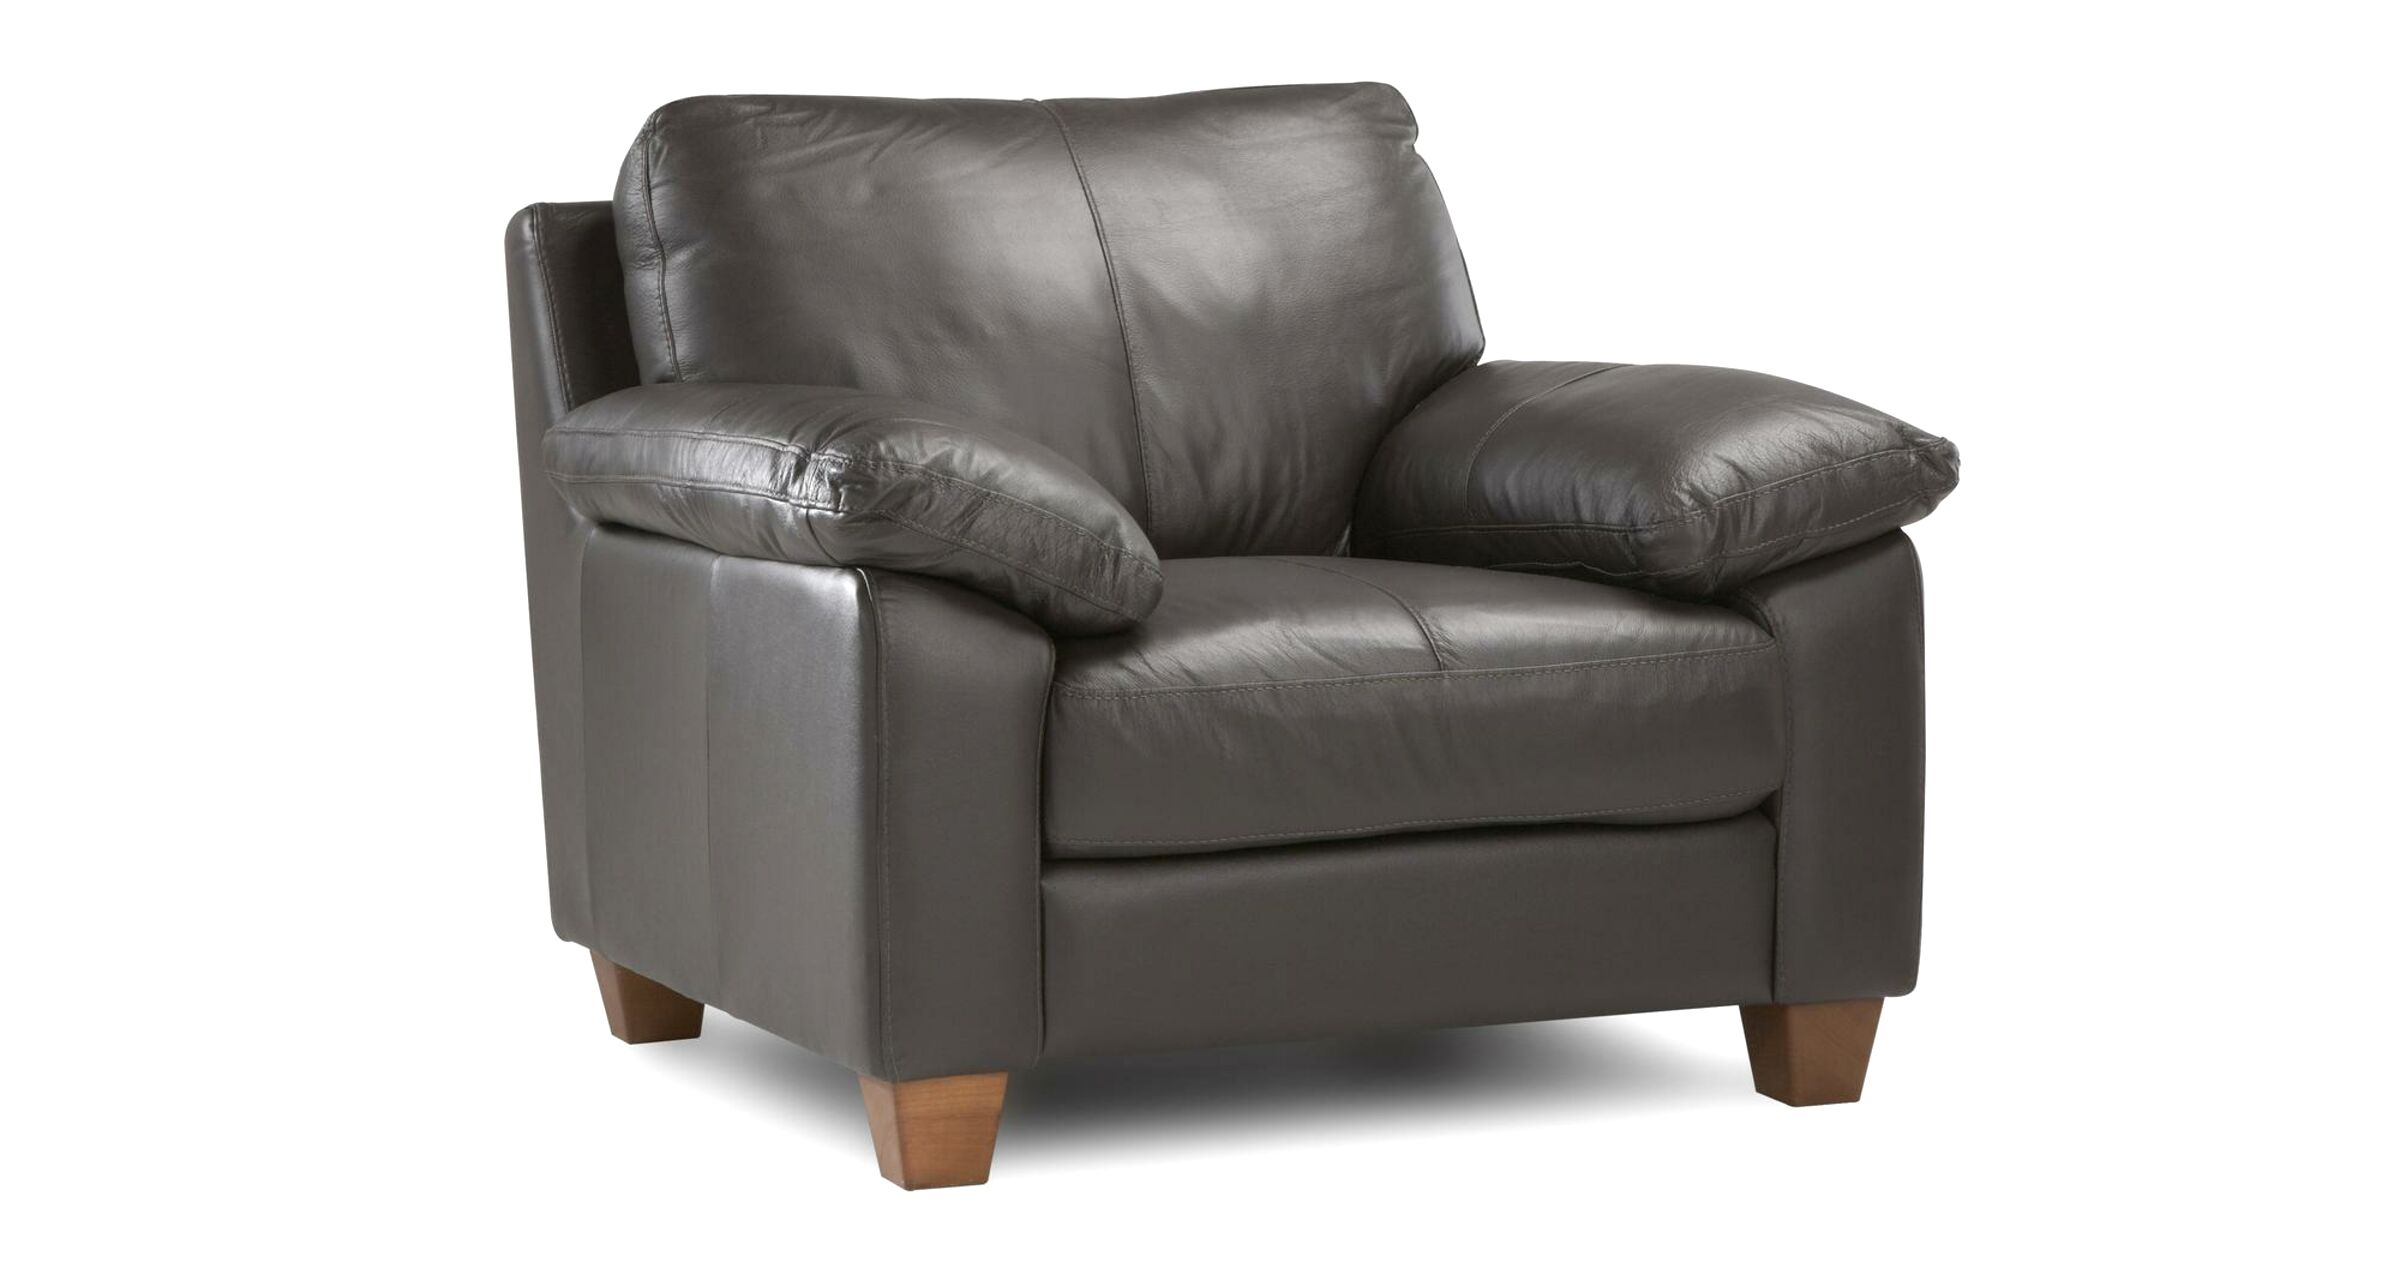 Dfs Leather Armchair for sale in UK | View 66 bargains